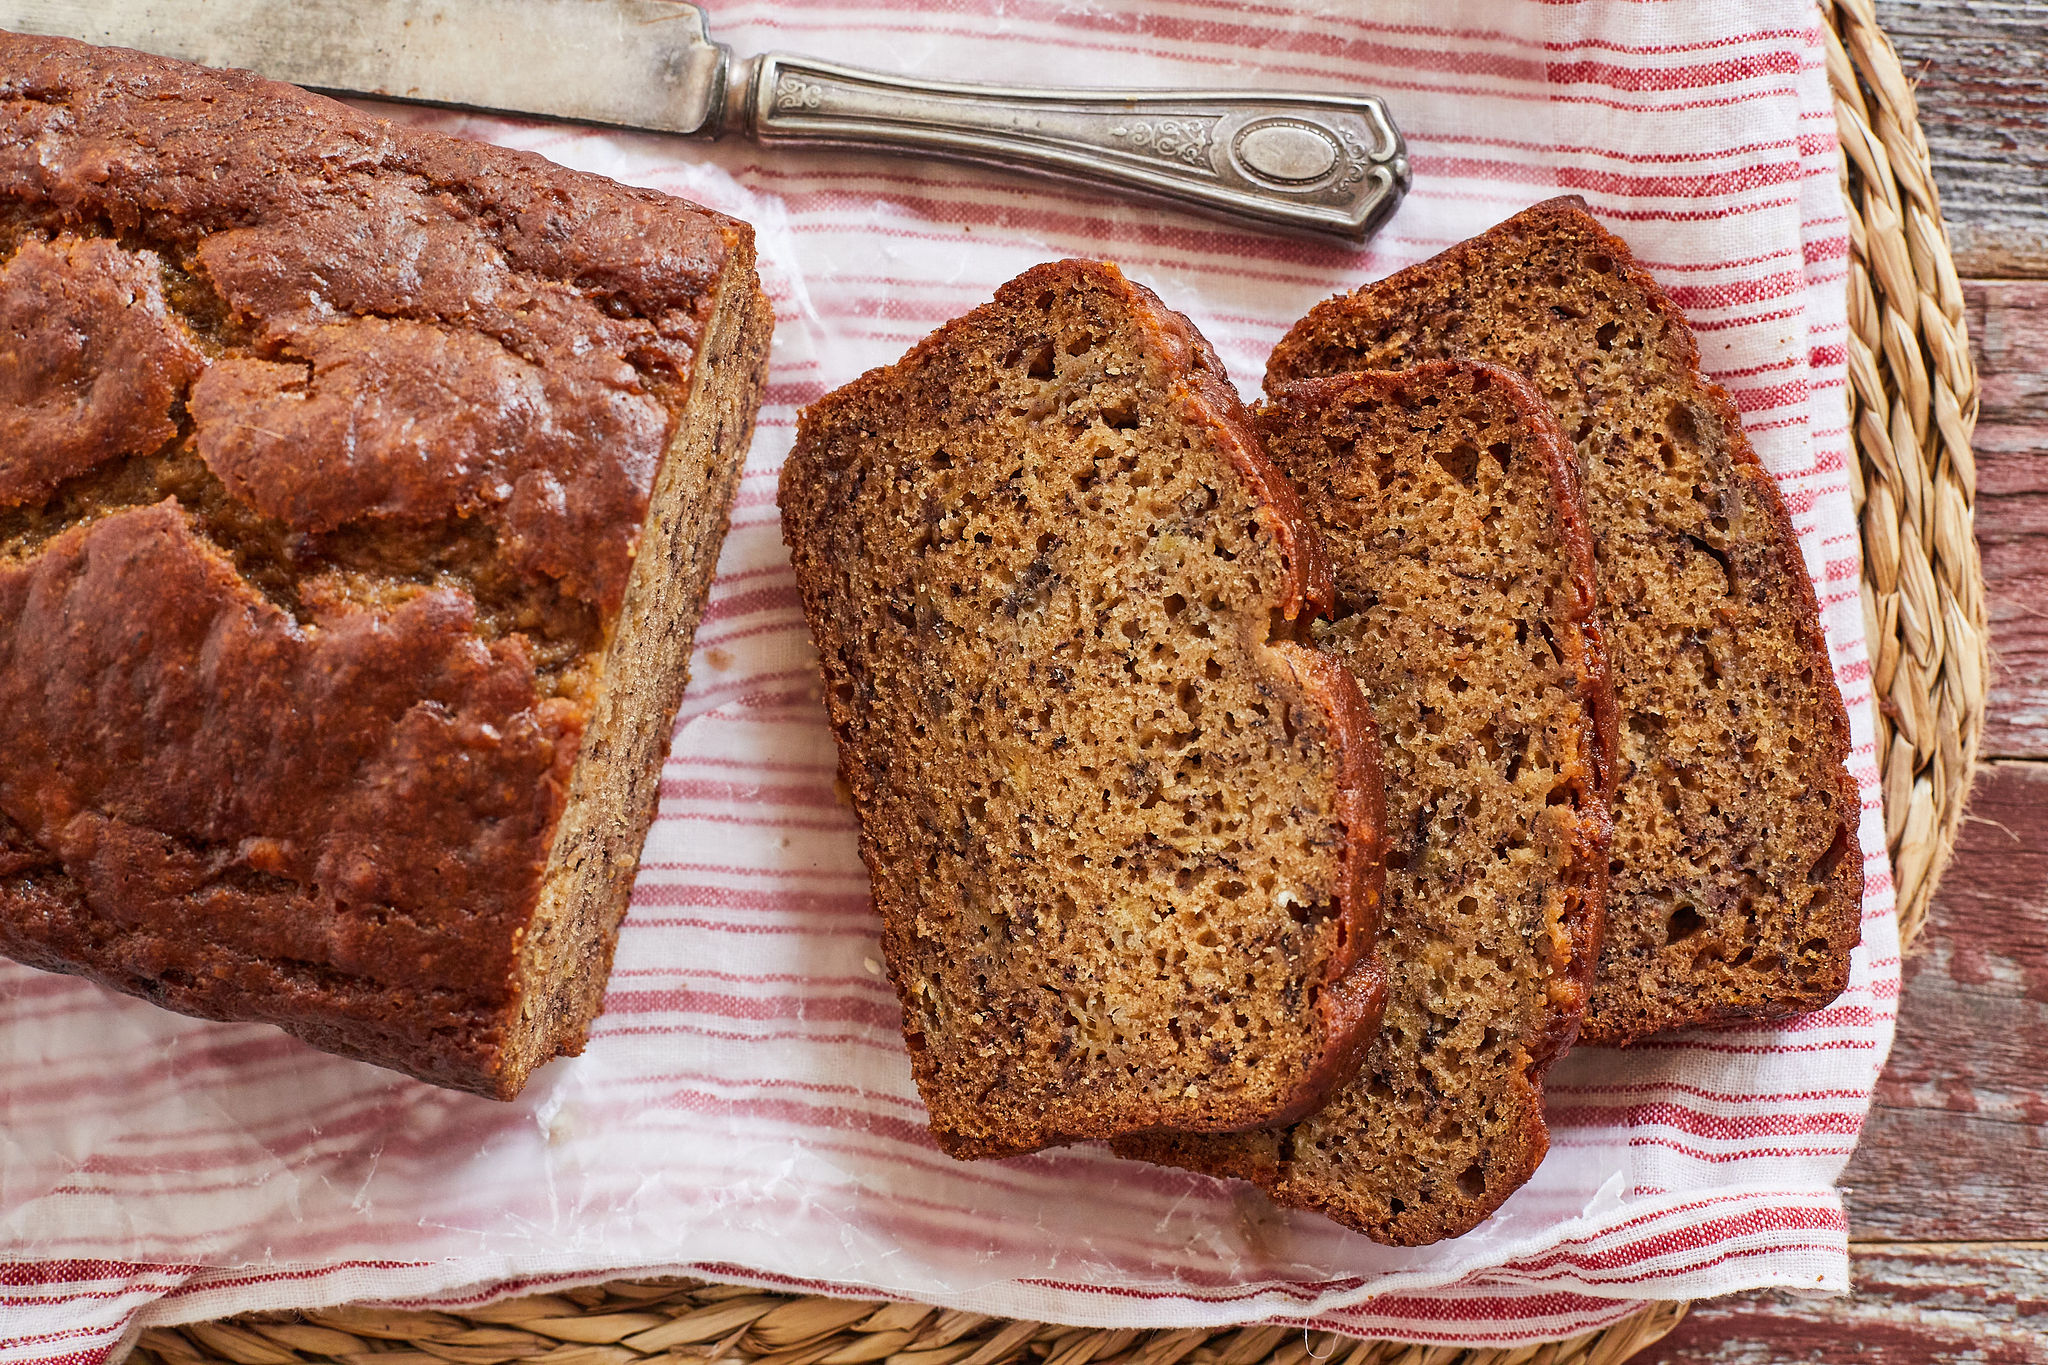 Slices of banana bread made with sour cream.